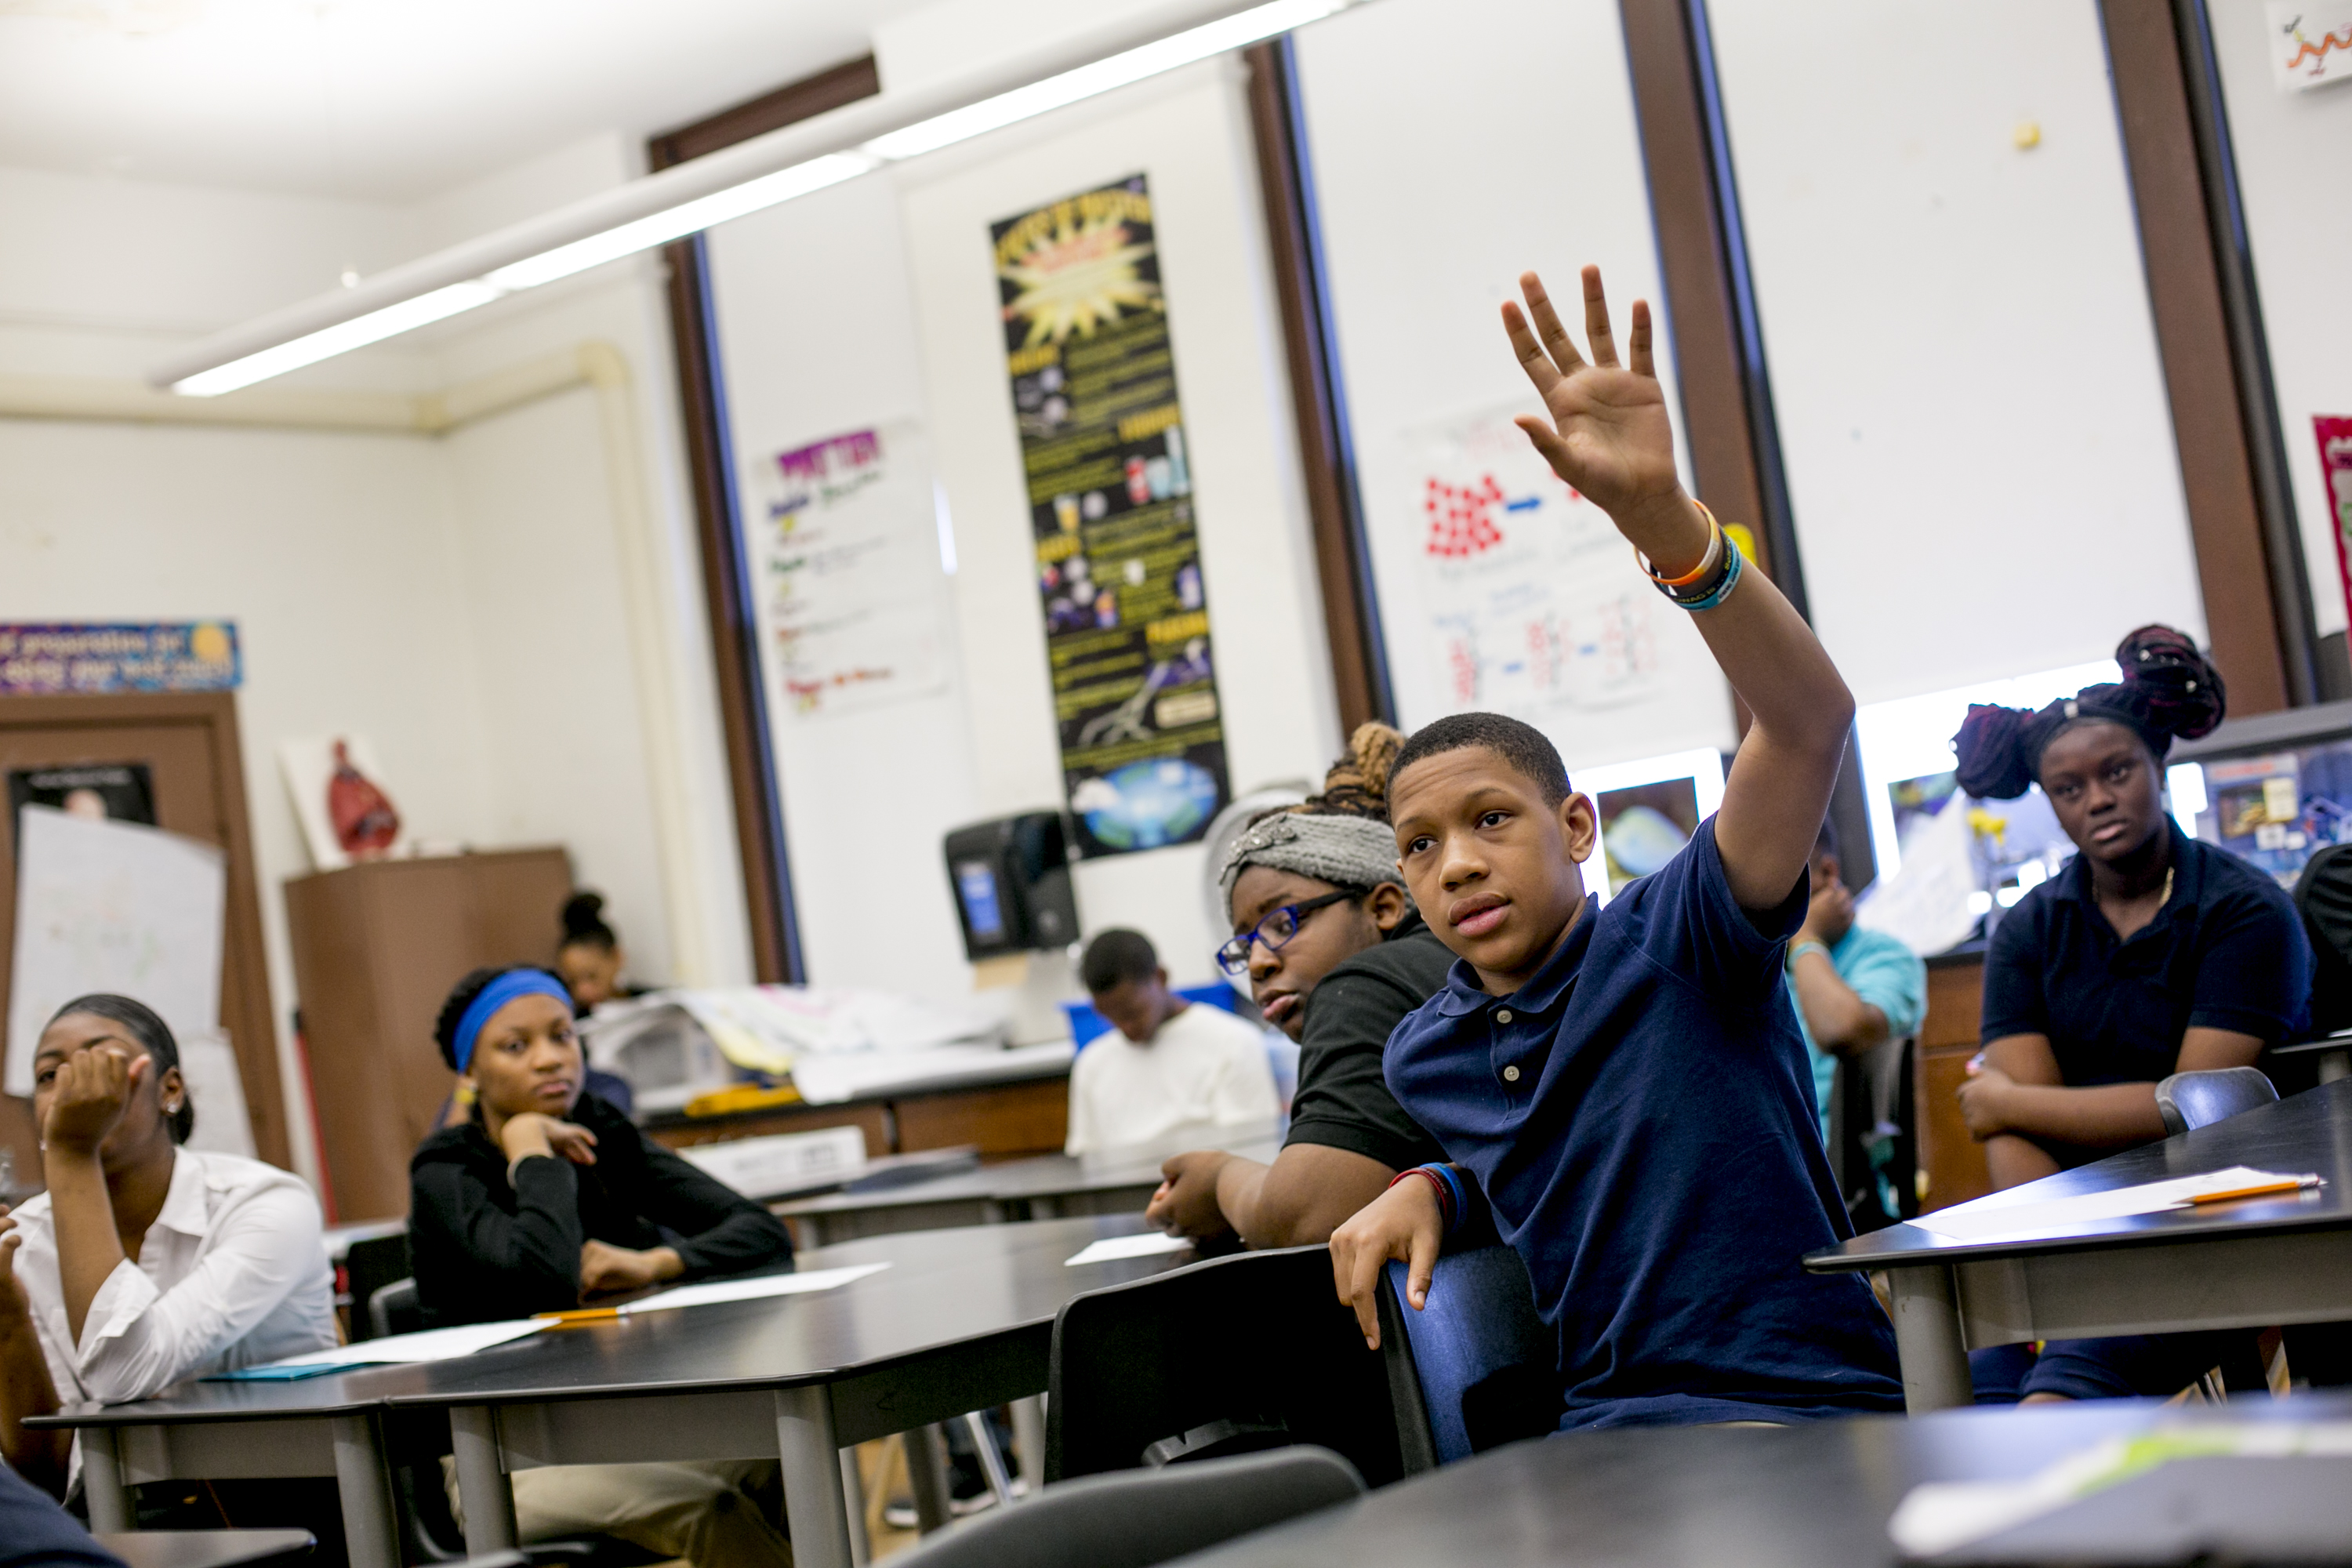 Jamarie Samuel attended seven schools by eighth grade, enrolling mid-seventh grade at Bethune Elementary-Middle School which, like many schools in Detroit, has chronic problems with students switching schools.